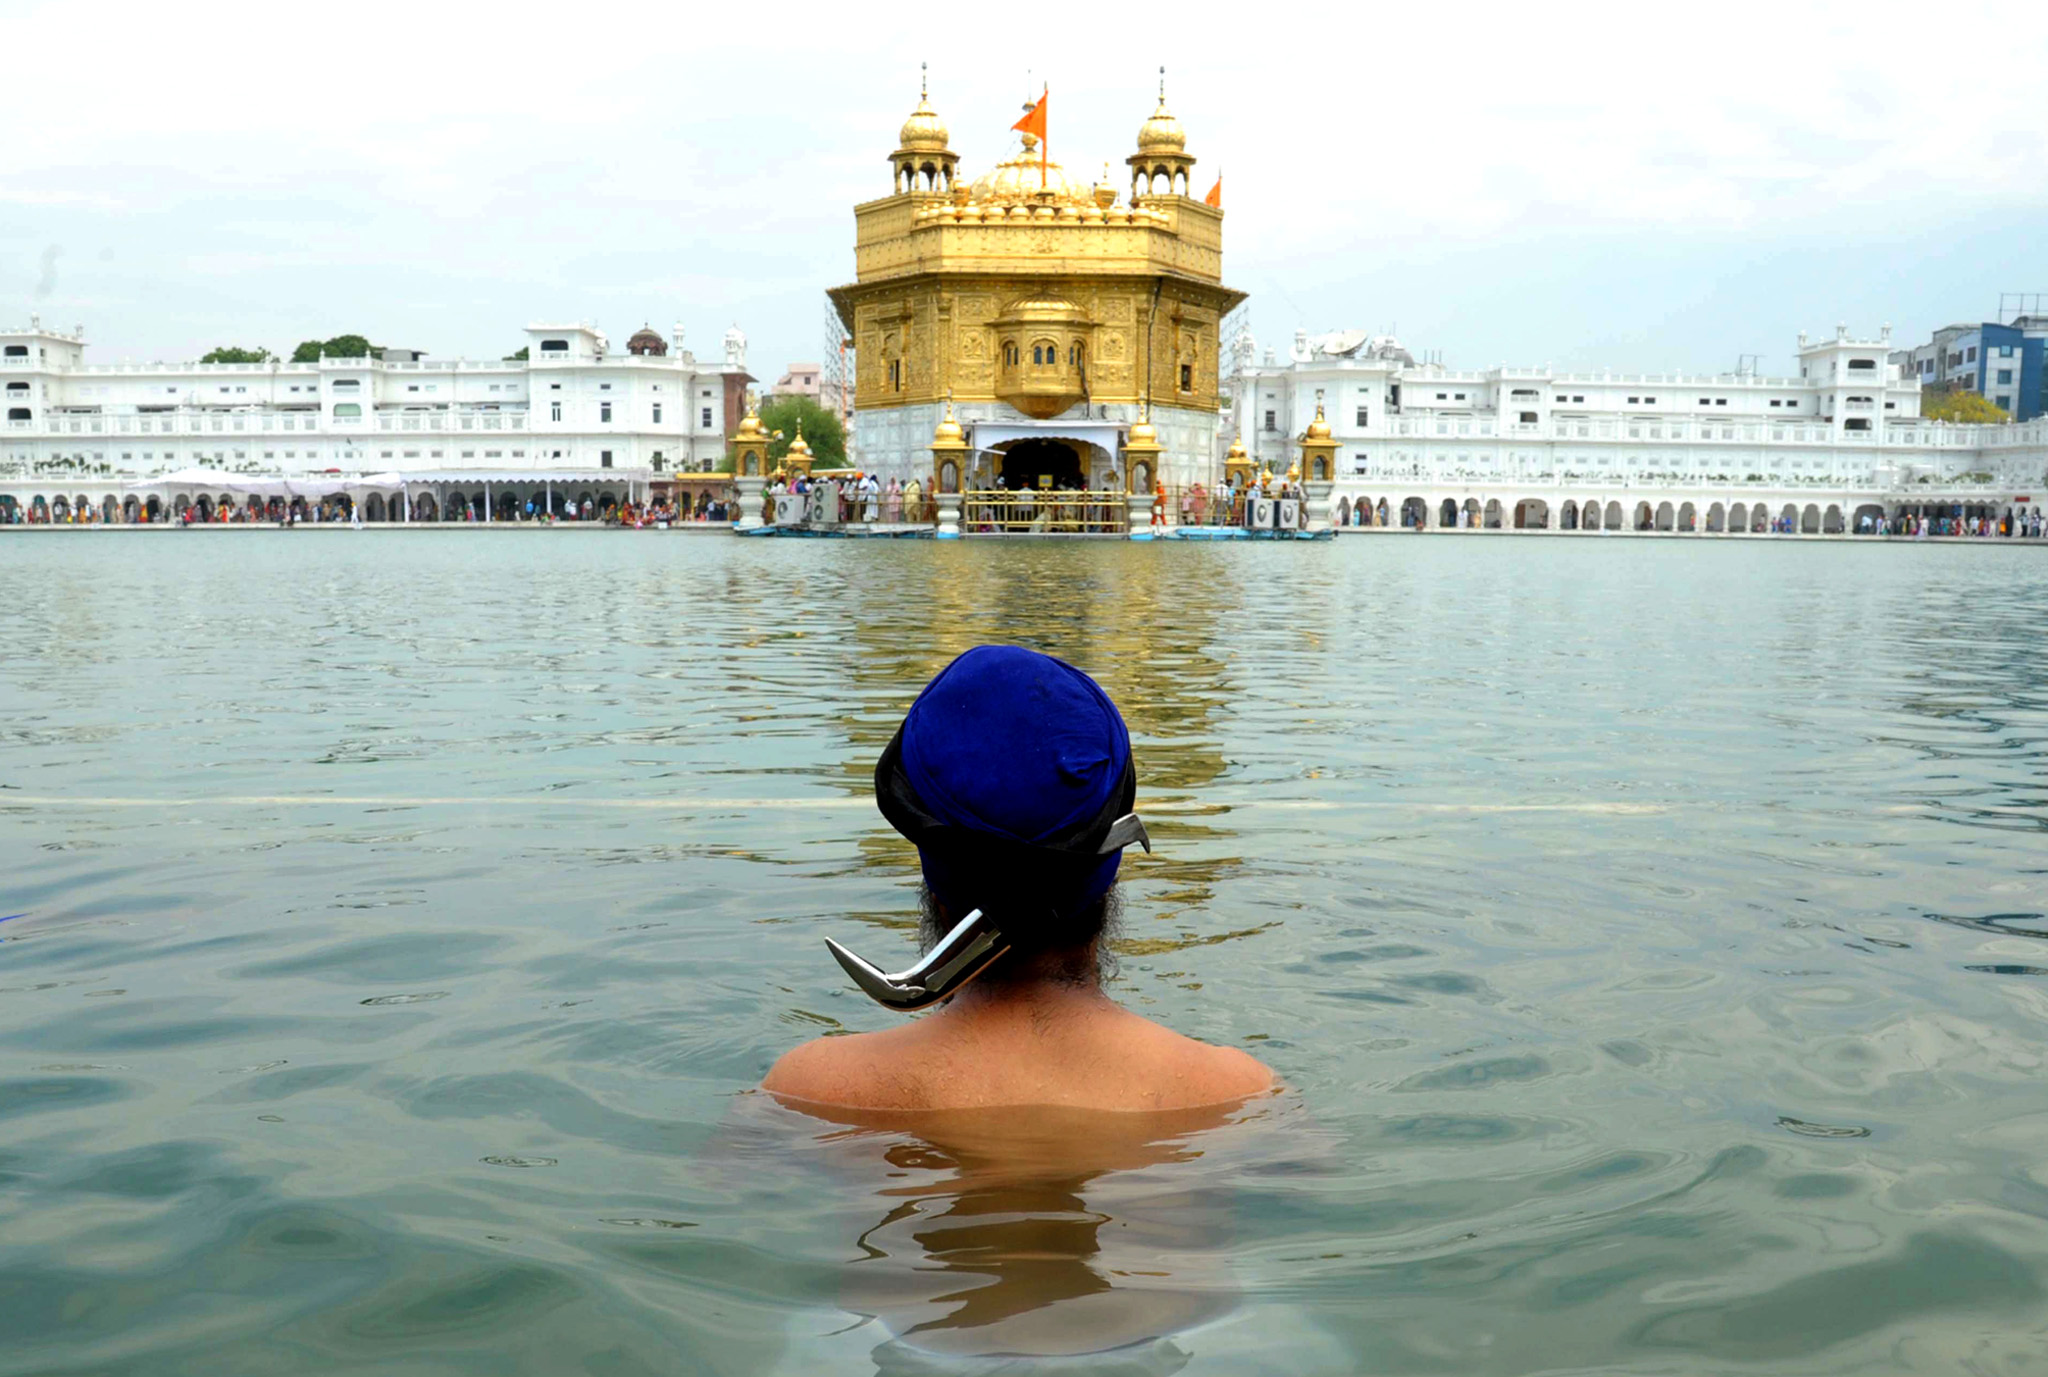 n Indian Sikh devotee takes a dip in the sarover (water tank) at the Sikh Shrine Golden temple in Amritsar on May 23, 2014, on the occasion of the 535th birth anniversary of Guru Amardas, the third master of the Sikhs. Guru Amardas lived from May 5, 1479 to September 1, 1574 and was the third of the 10 Gurus of Sikhism and was given the title of Sikh Guru on March 26, 1552.  AFP PHOTO/NARINDER NANUNARINDER NANU/AFP/Getty Images